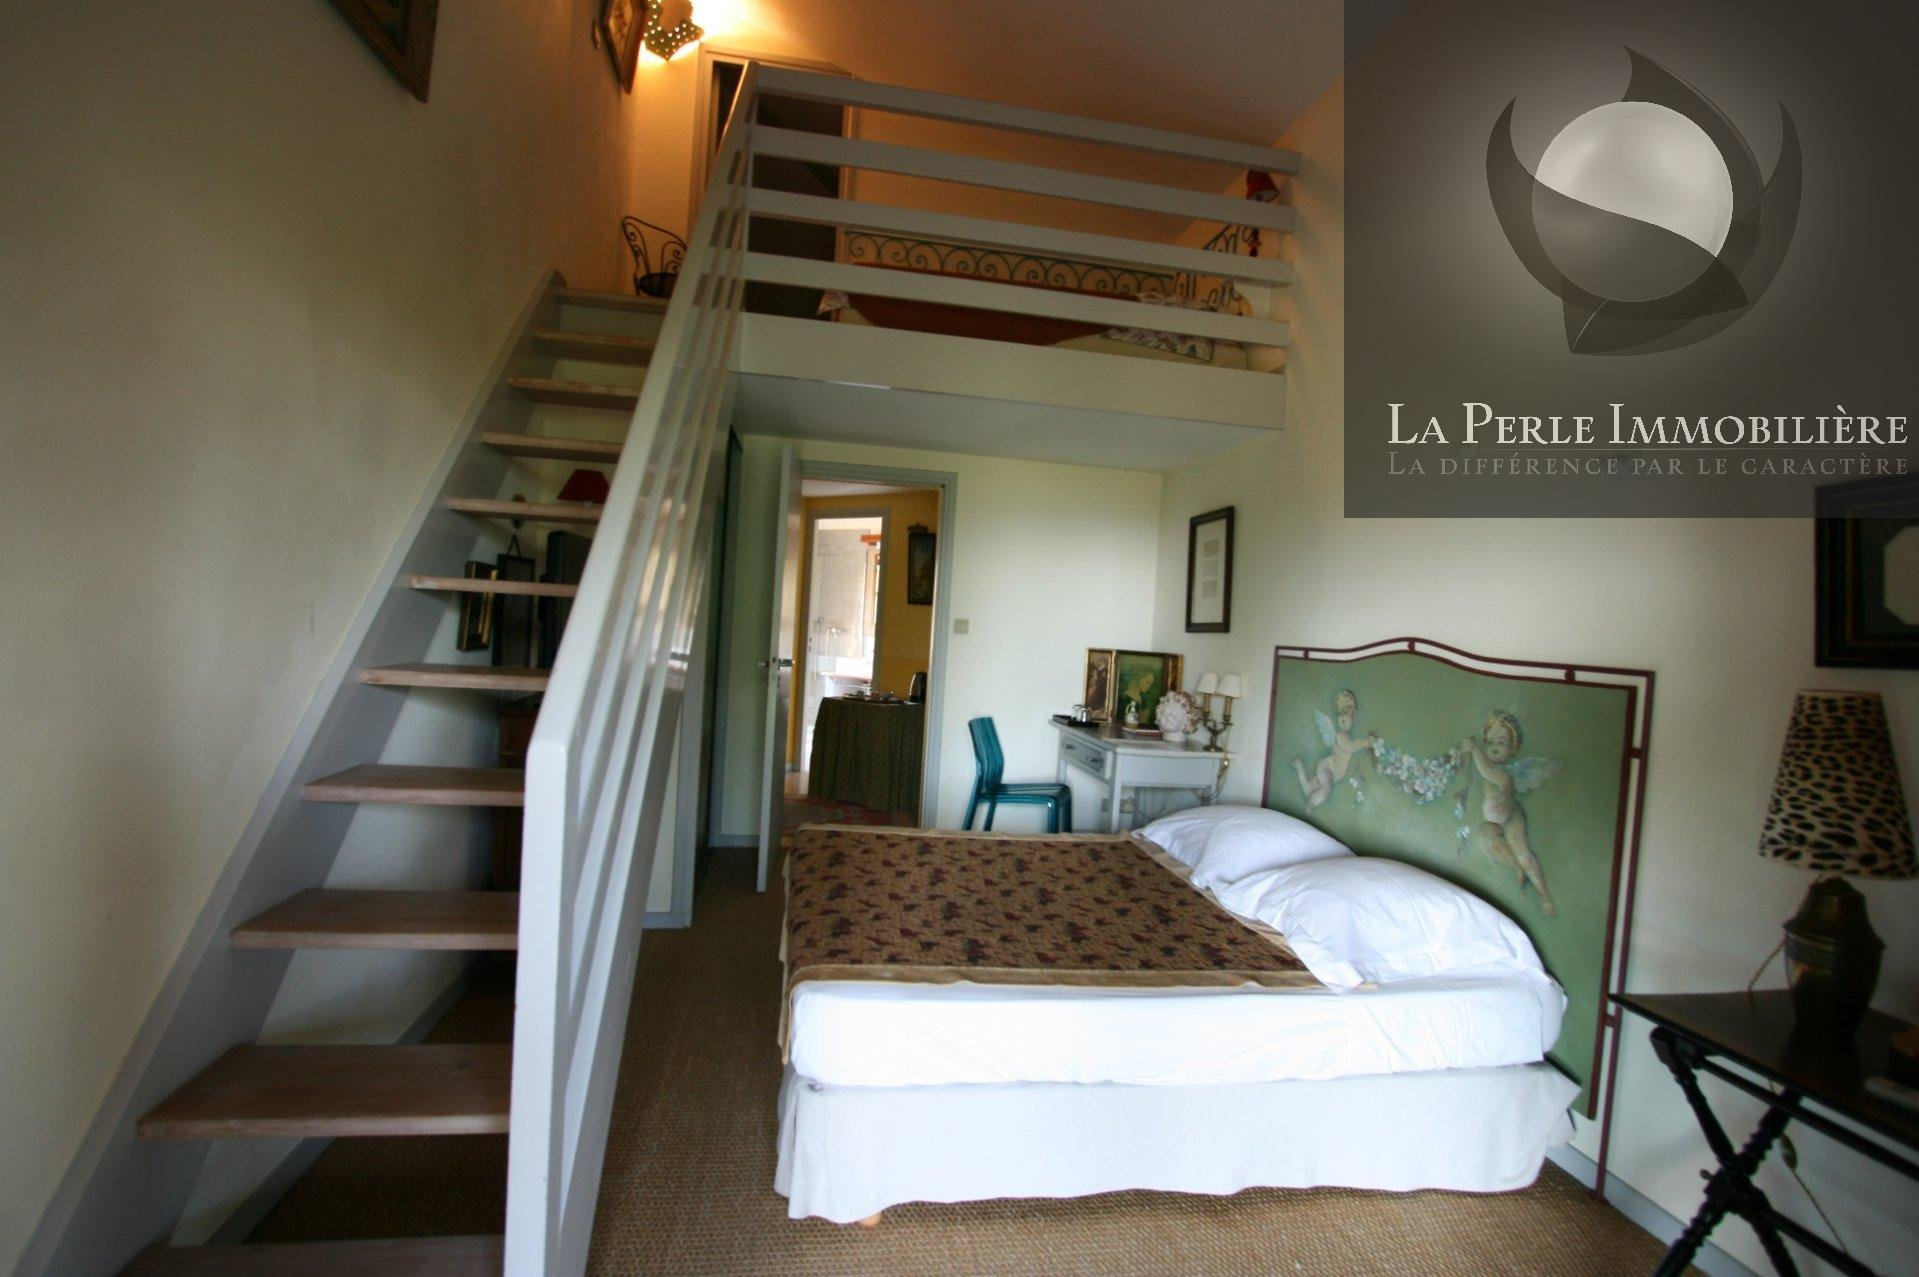 Sale Bed and breakfast - Montauban